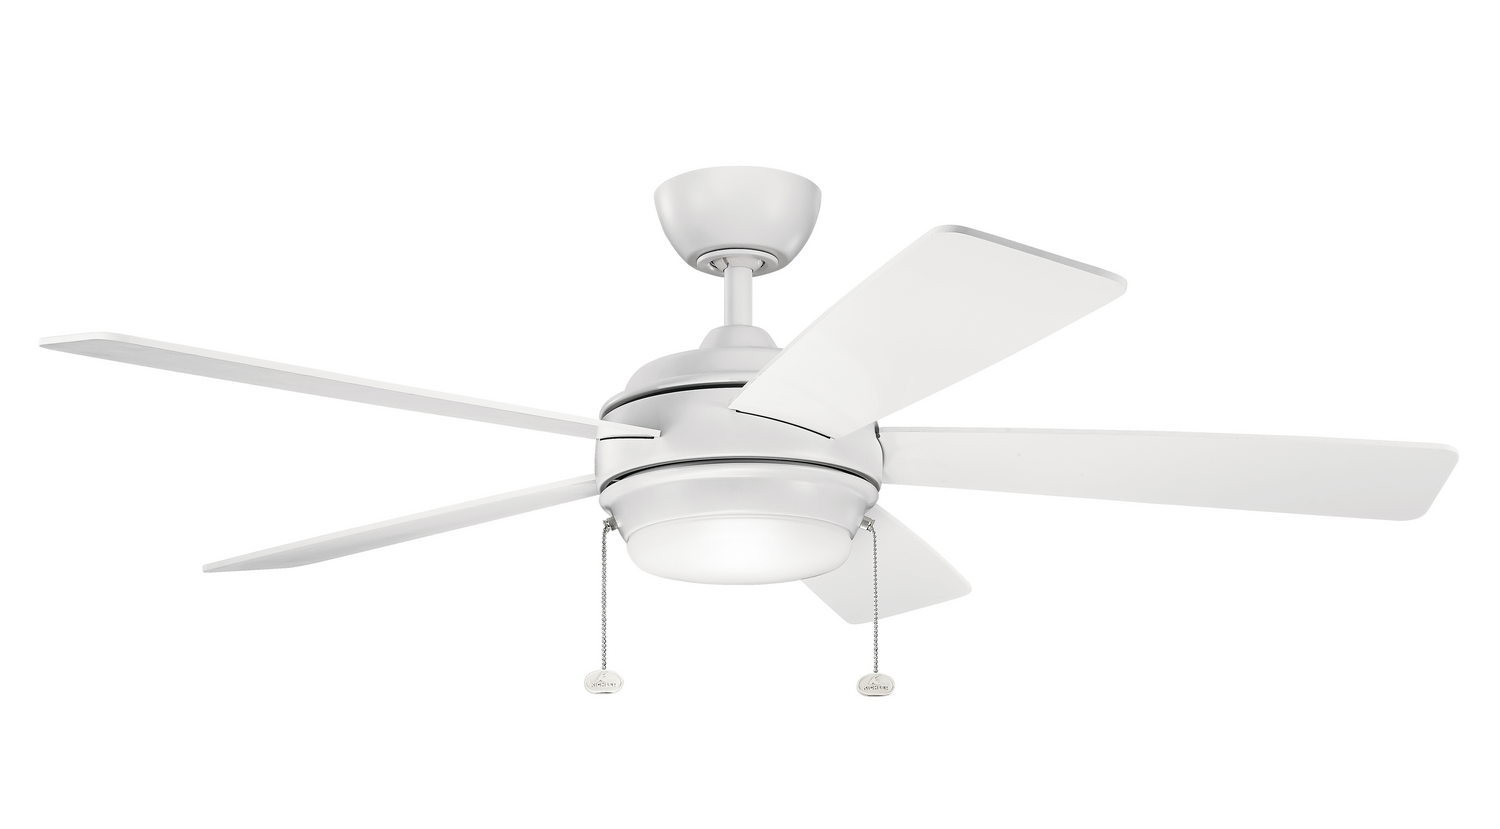 52 inchCeiling Fan from the Starkk collection by Kichler 300173MWH